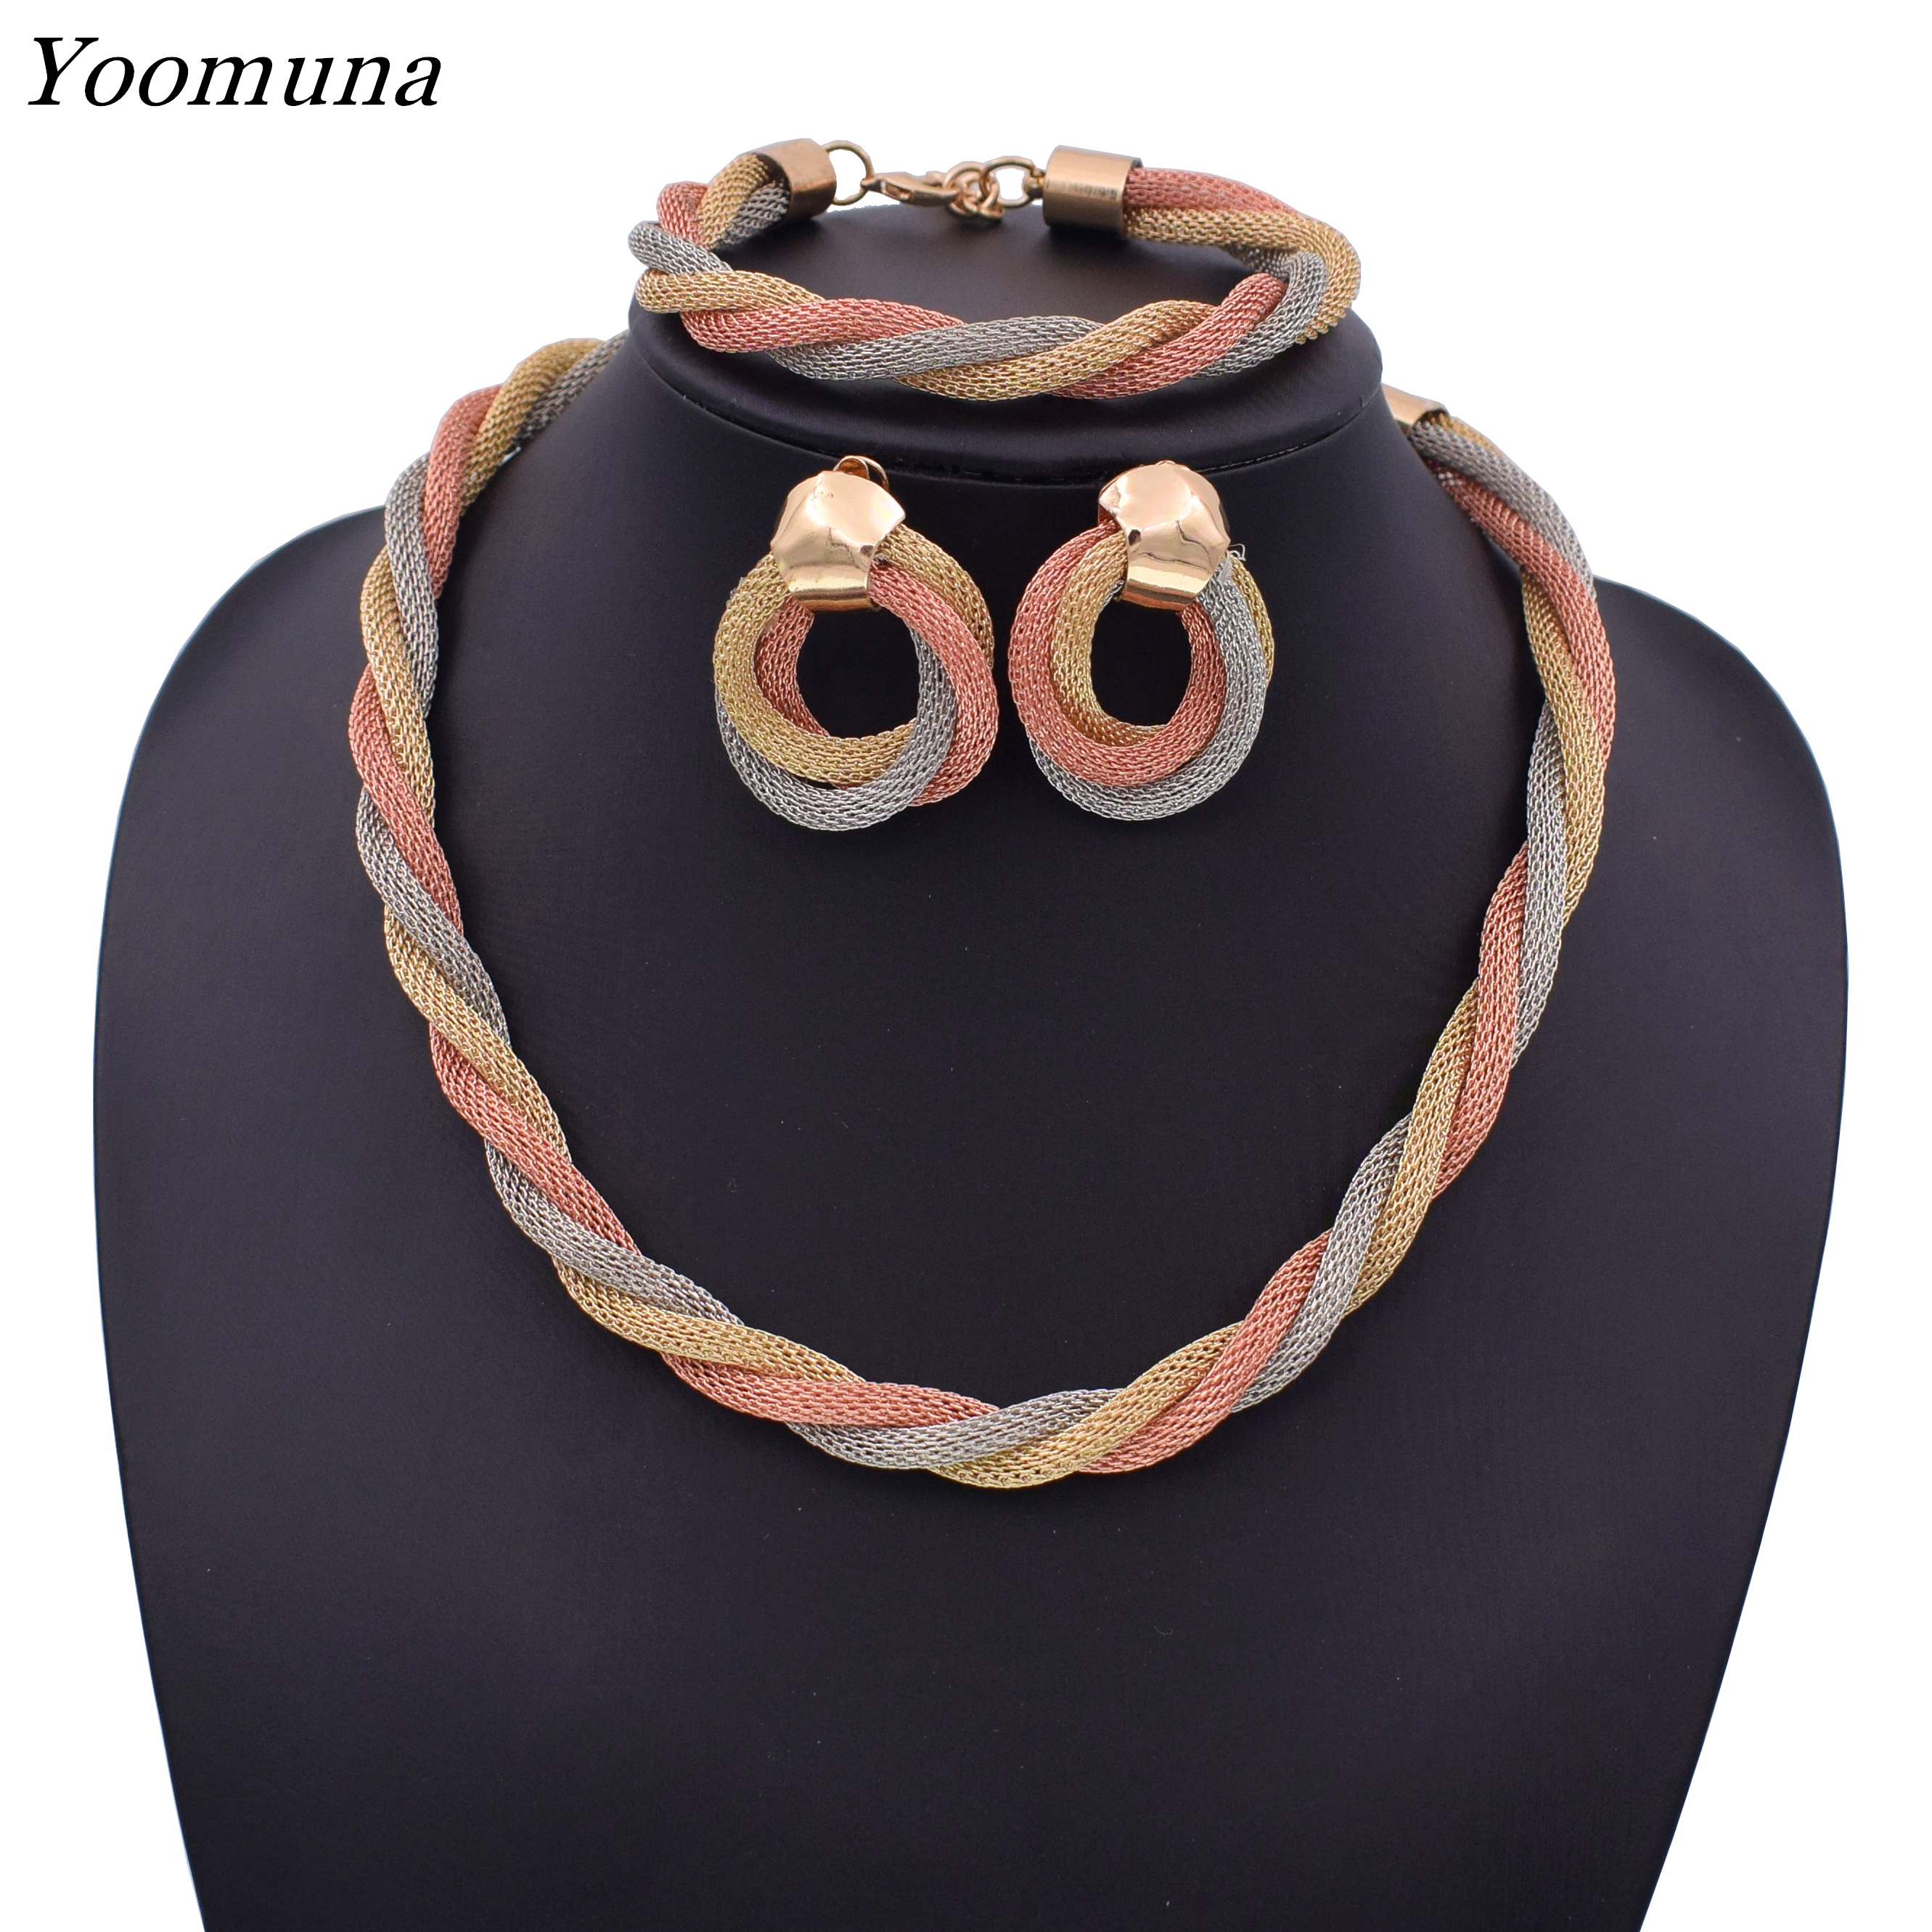 <font><b>Jewelry</b></font> <font><b>Set</b></font> <font><b>For</b></font> Women African Beads <font><b>Jewelry</b></font> <font><b>Set</b></font> Wedding Twist Weave Choker Necklace Bridal Dubai Ethiopian Jewellery <font><b>Sets</b></font> <font><b>2019</b></font> image